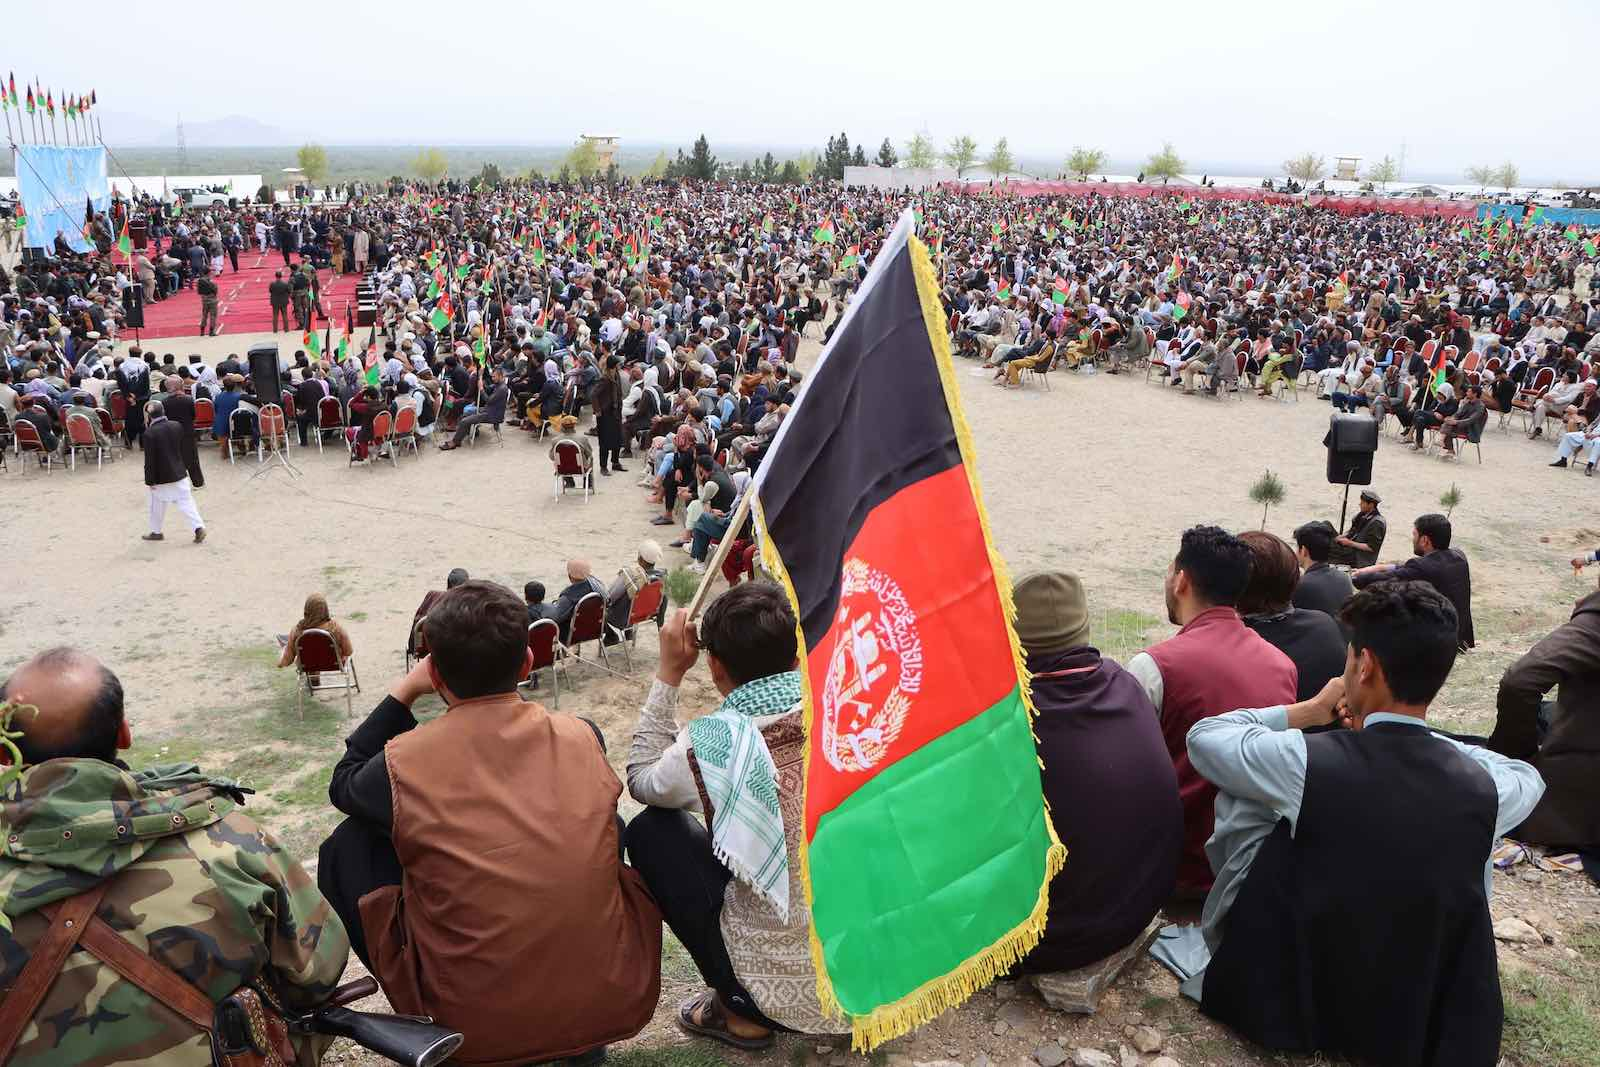 Thousands of Afghans attended a rally in Parwan, outside of Kabul, to show support for the peace talks process, 28 March 2021 (Haroon Sabawoon/Anadolu Agency via Getty Images)